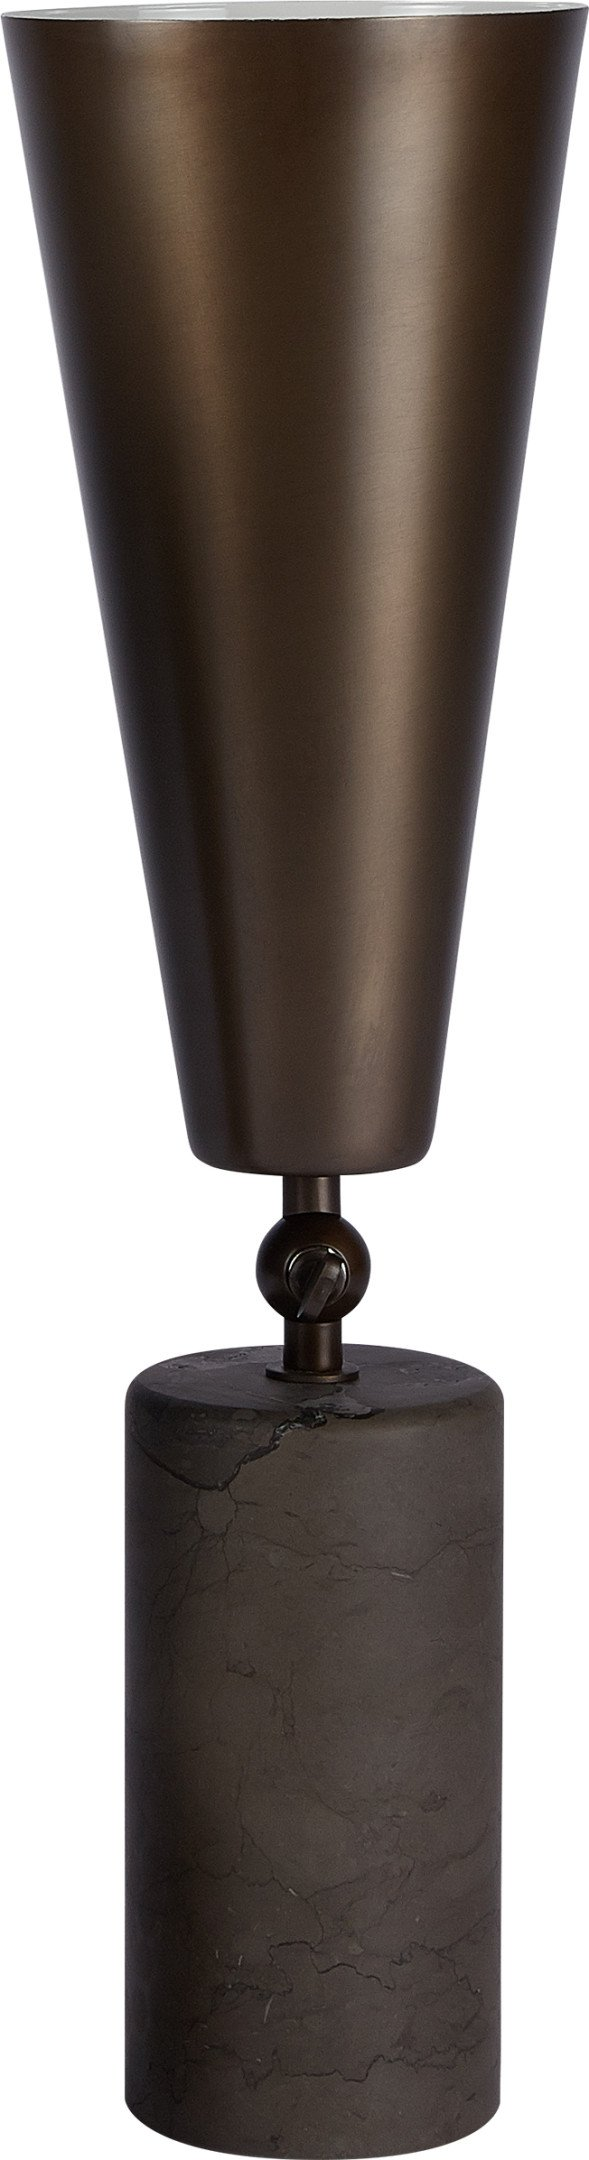 Large Bronze and Persian Marble Vox Table Lamp by L. Bozzoli for Tato Italia - 459903 - photo